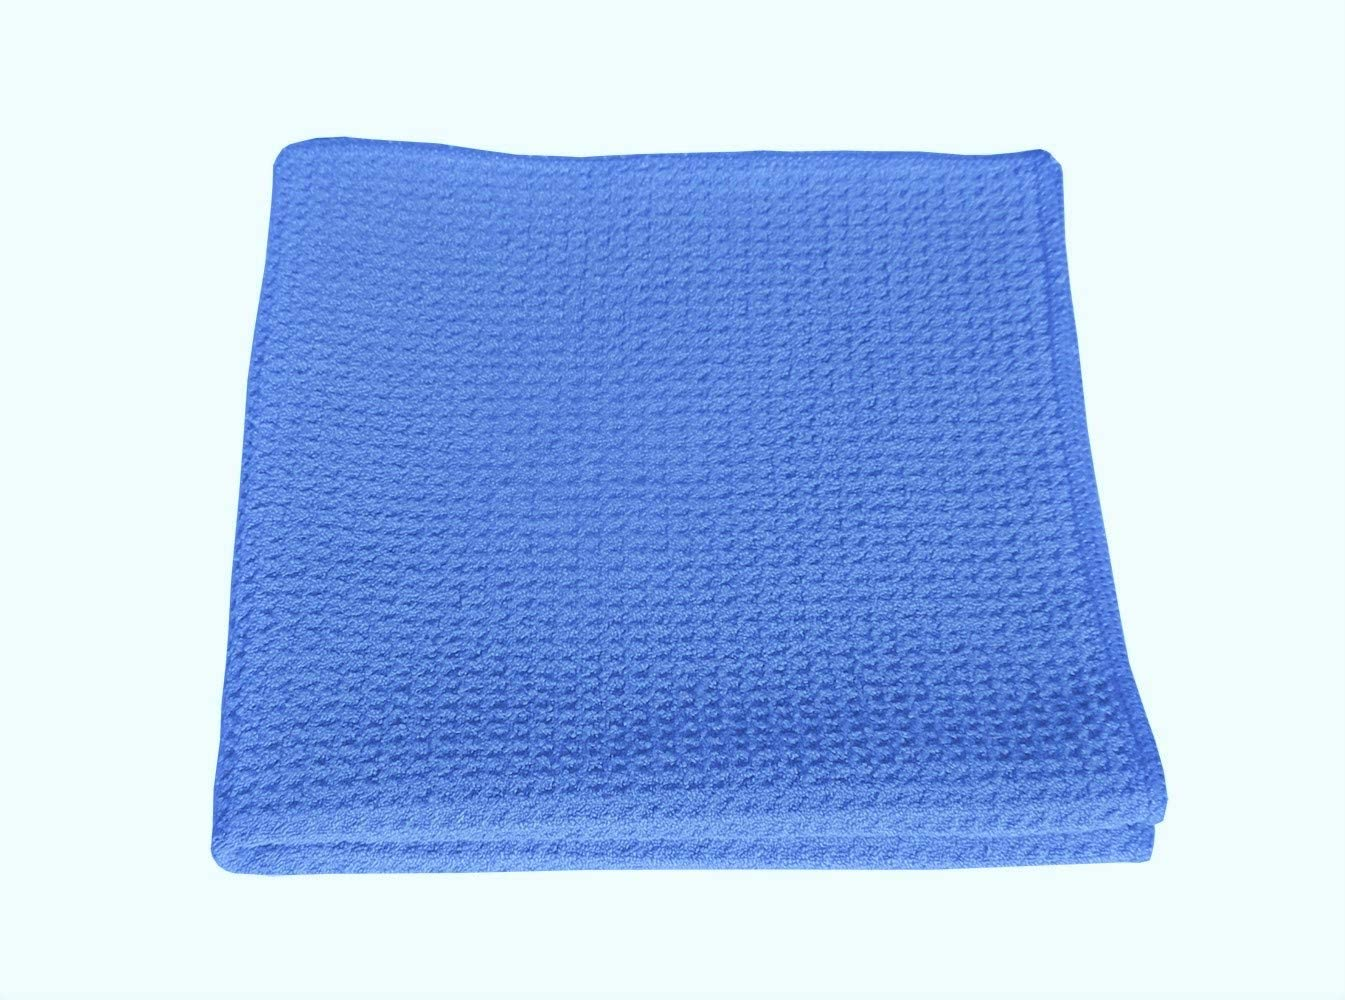 Simplee Cleen Blue Waffle Weave Dish Cloth 12x12